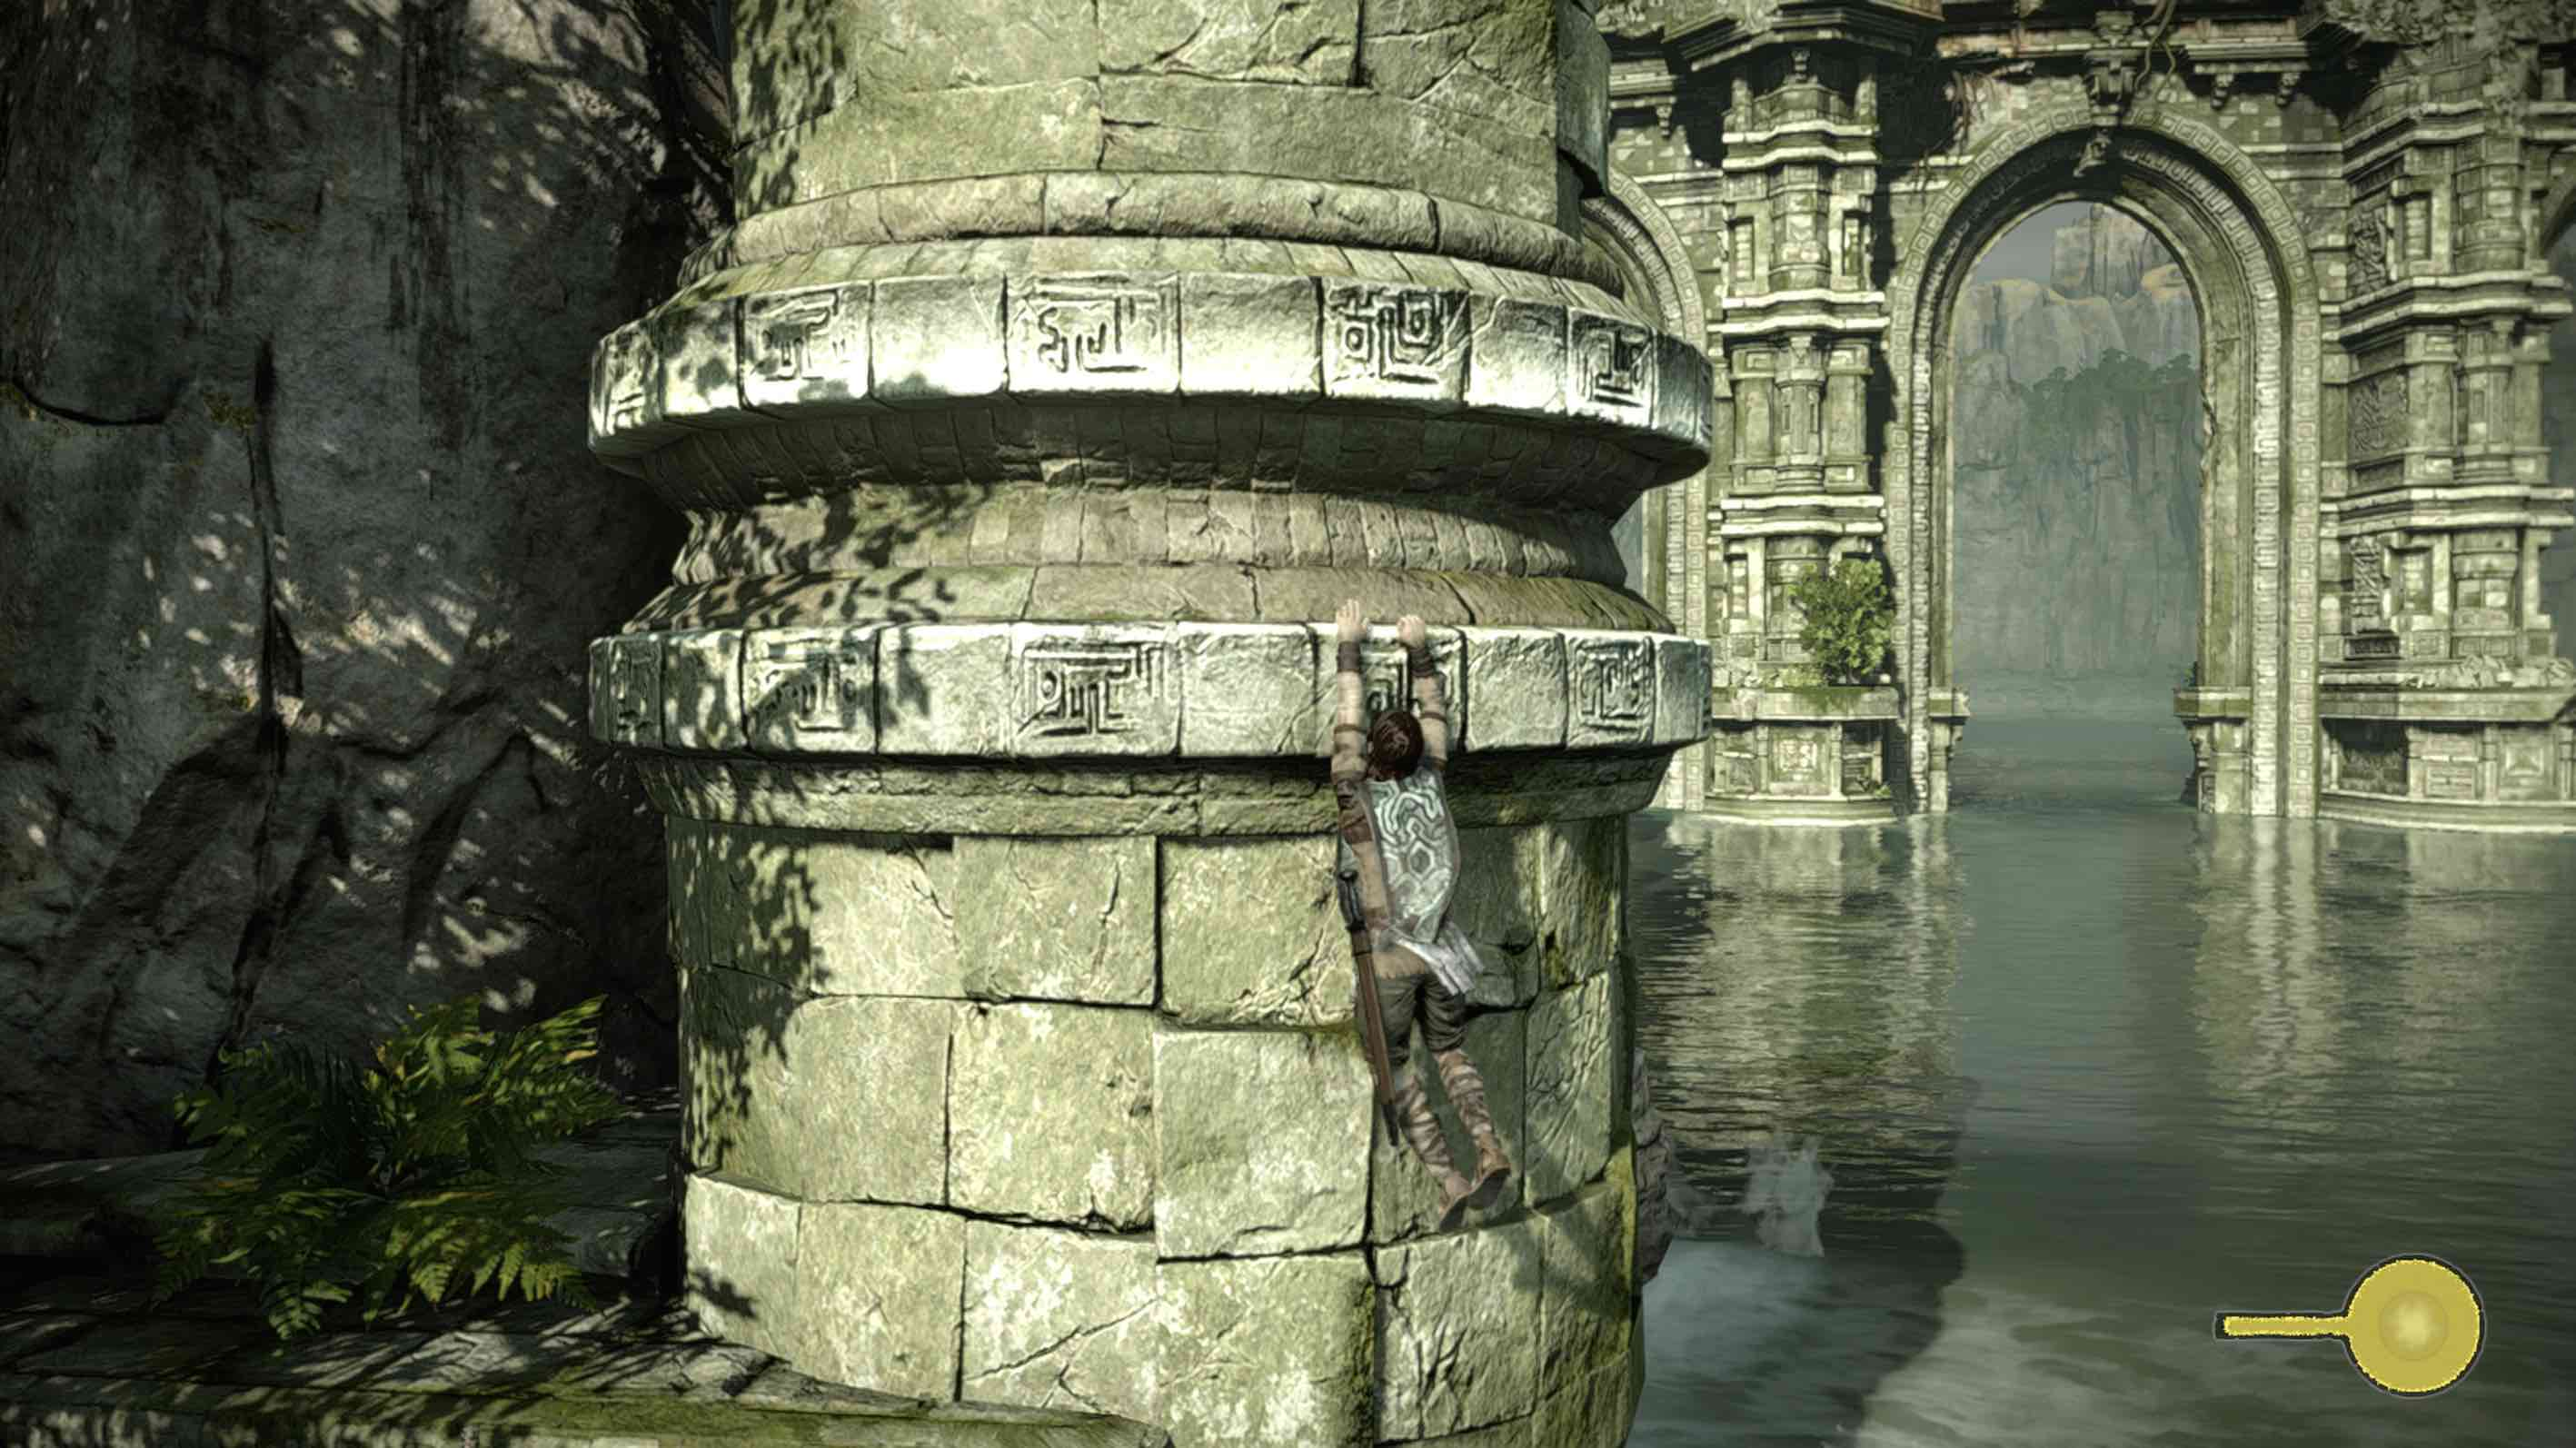 Shadow_of_the_Colossus_Coloso_12_2